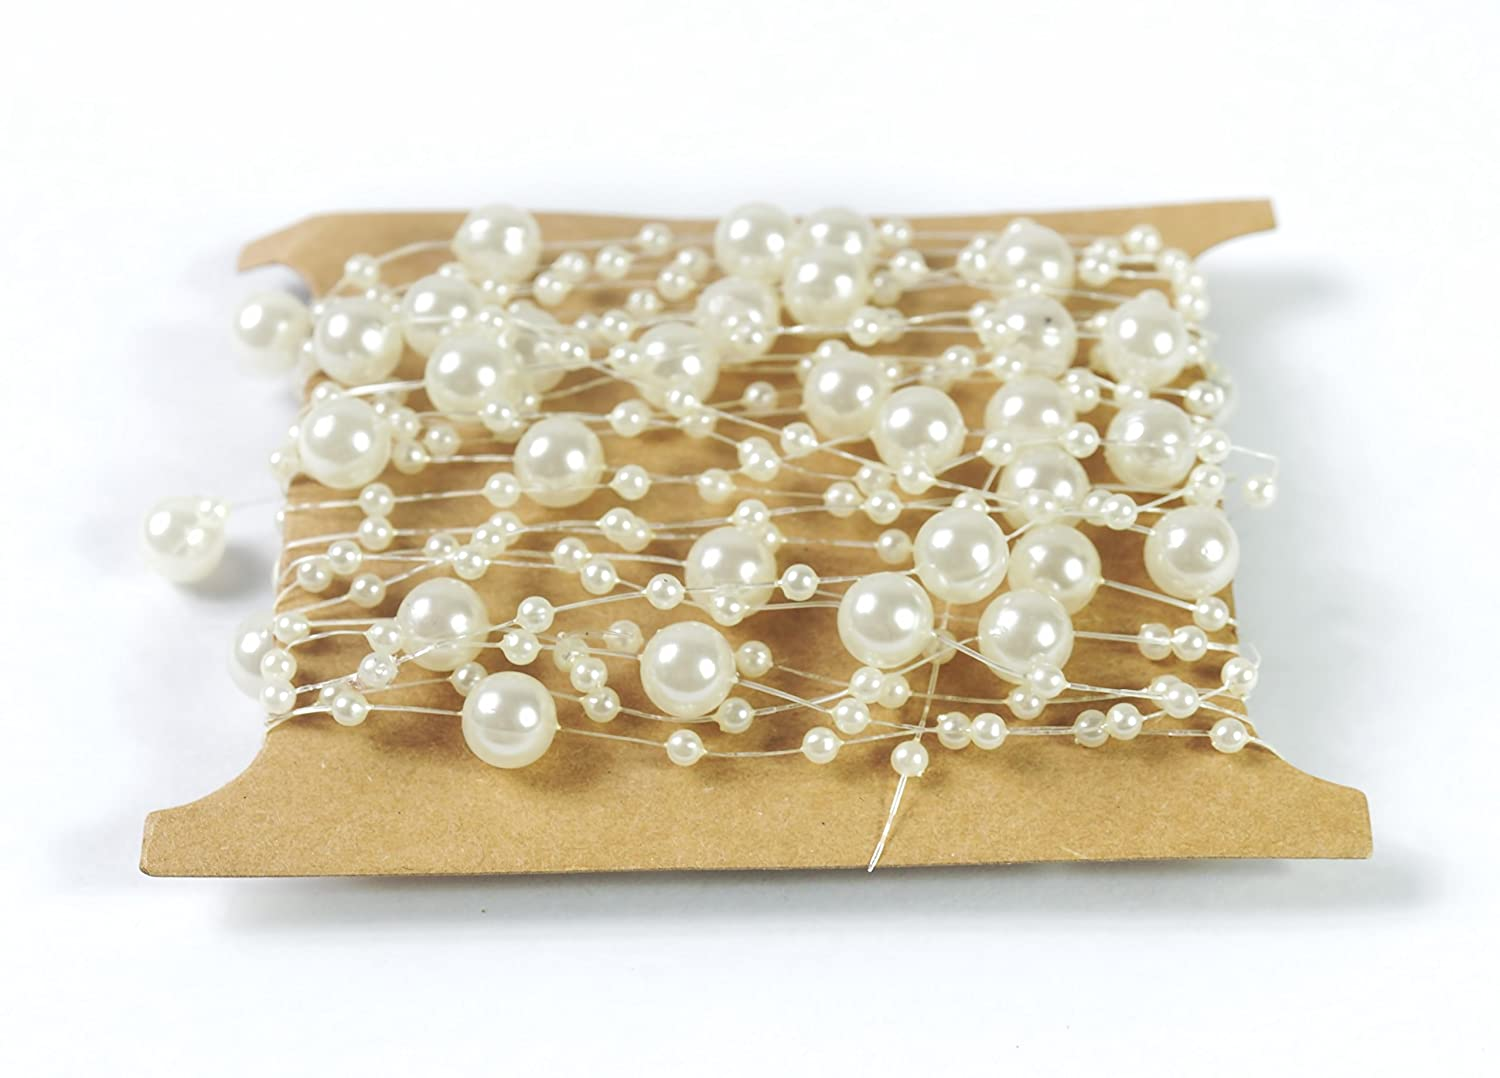 ALL in ONE 5M/16.4ft Pearls Beads String for DIY Craft Wedding Party Centerpieces Bridal Bouquet Bridal Headband Decoration (Ivory Heart Shape Pearl)